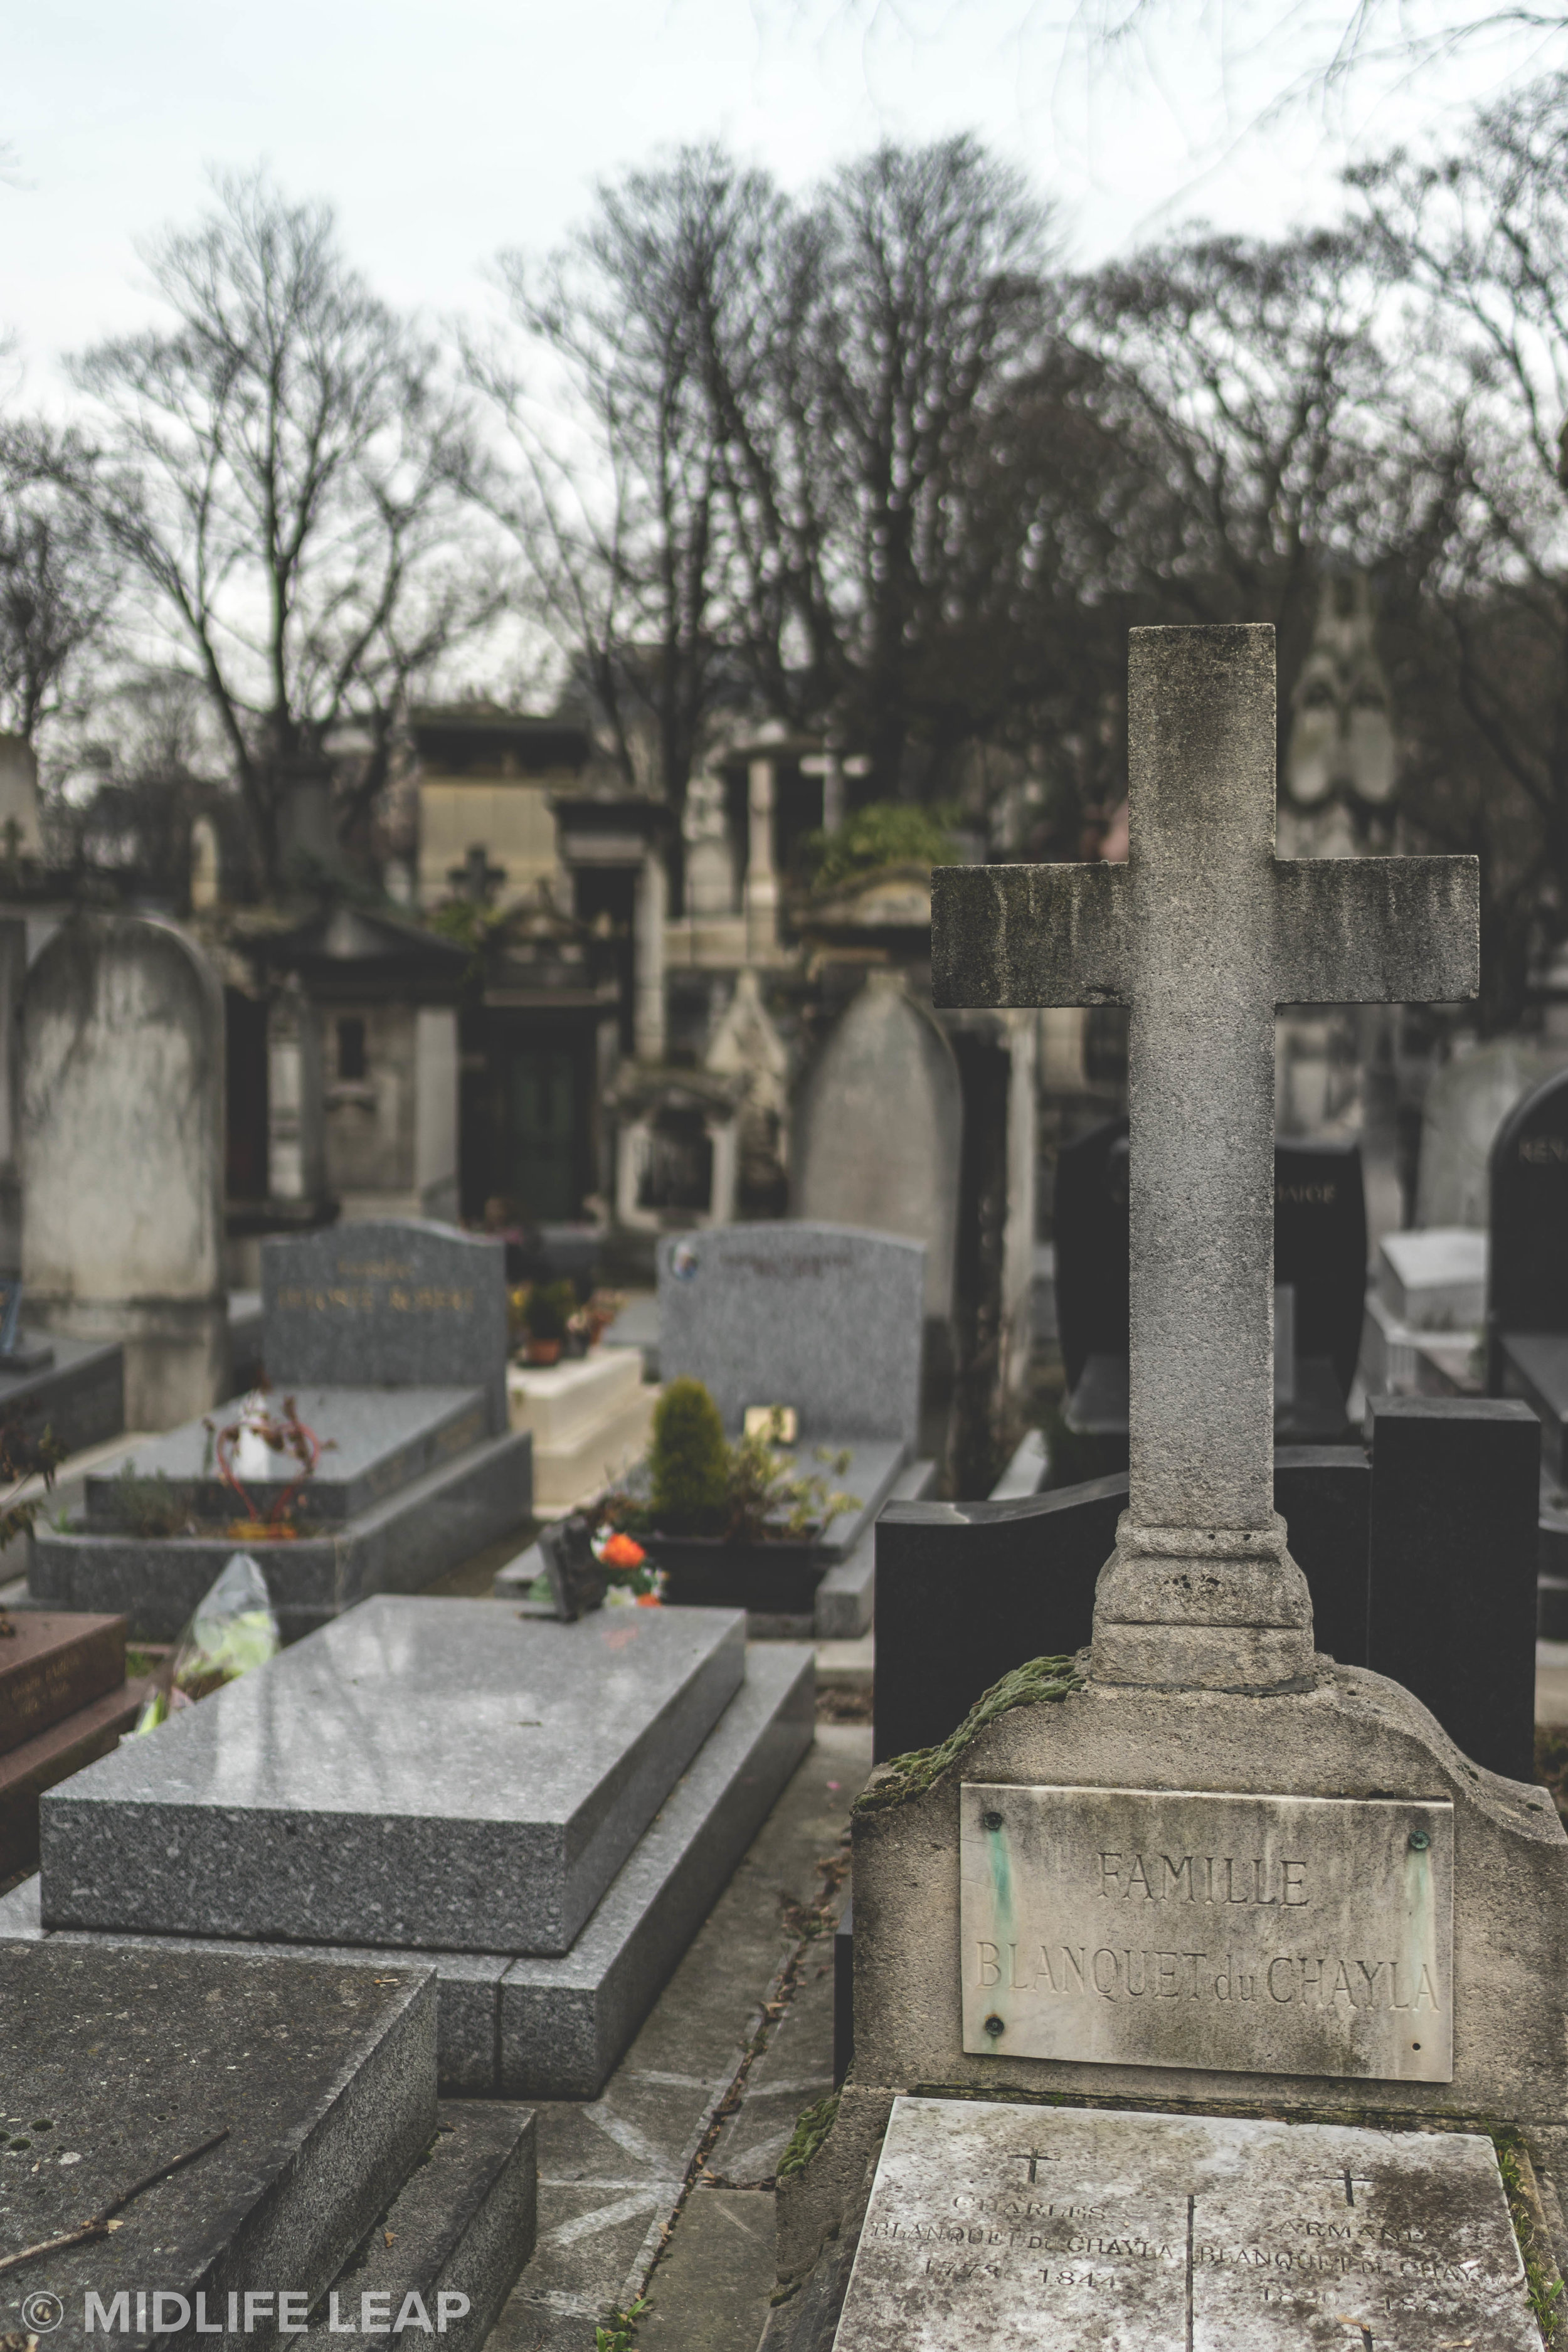 montmartre-cemetery-what-to-do-in-montmartre-18th-arrondissement-paris